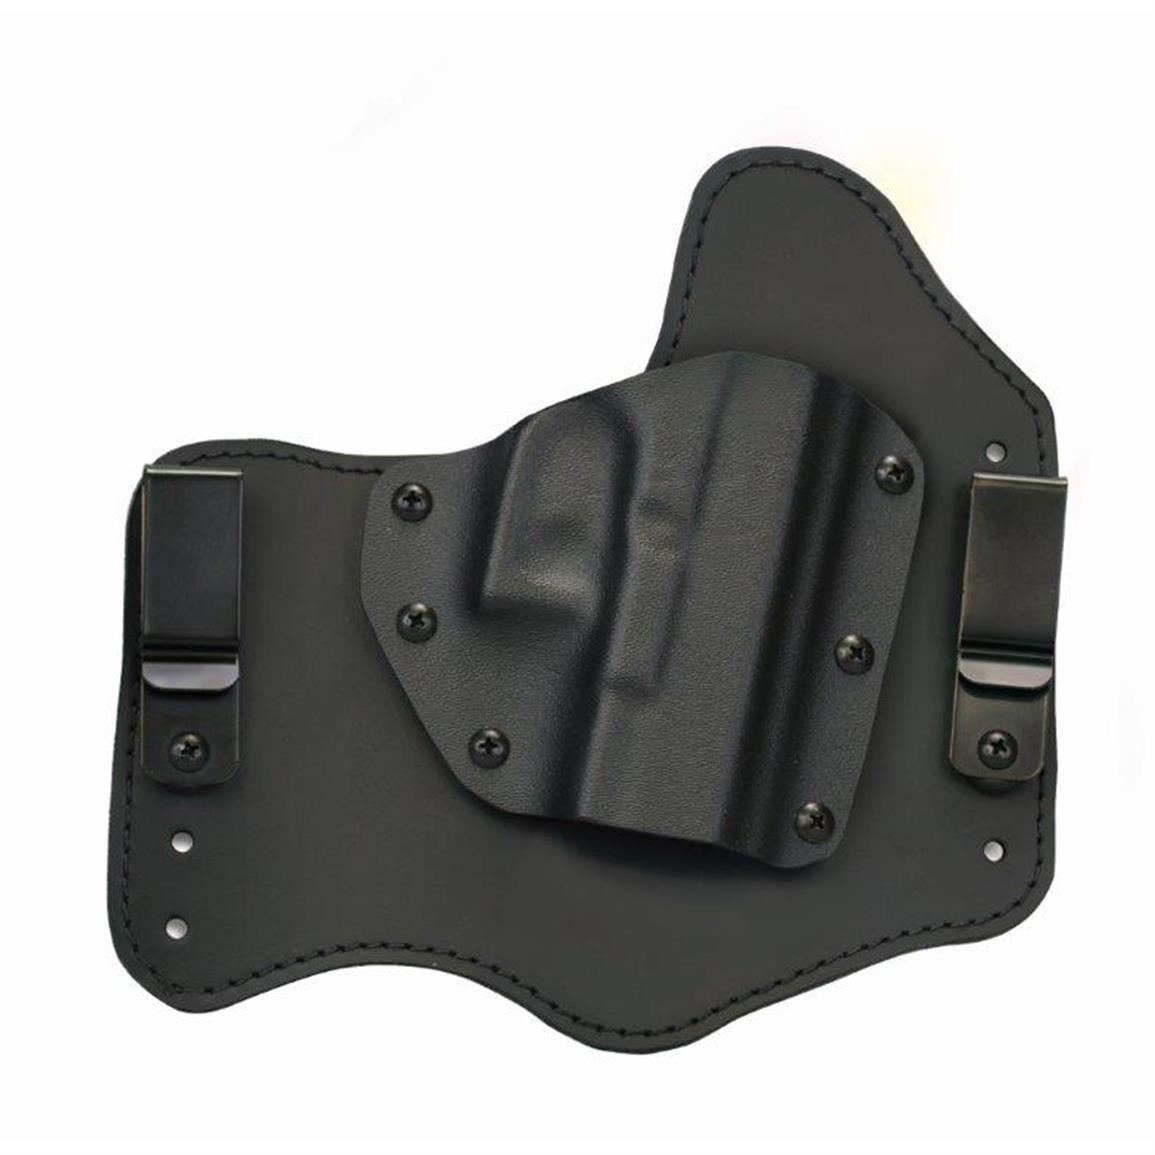 Homeland Hybrid Holster, Springfield Armory XDS